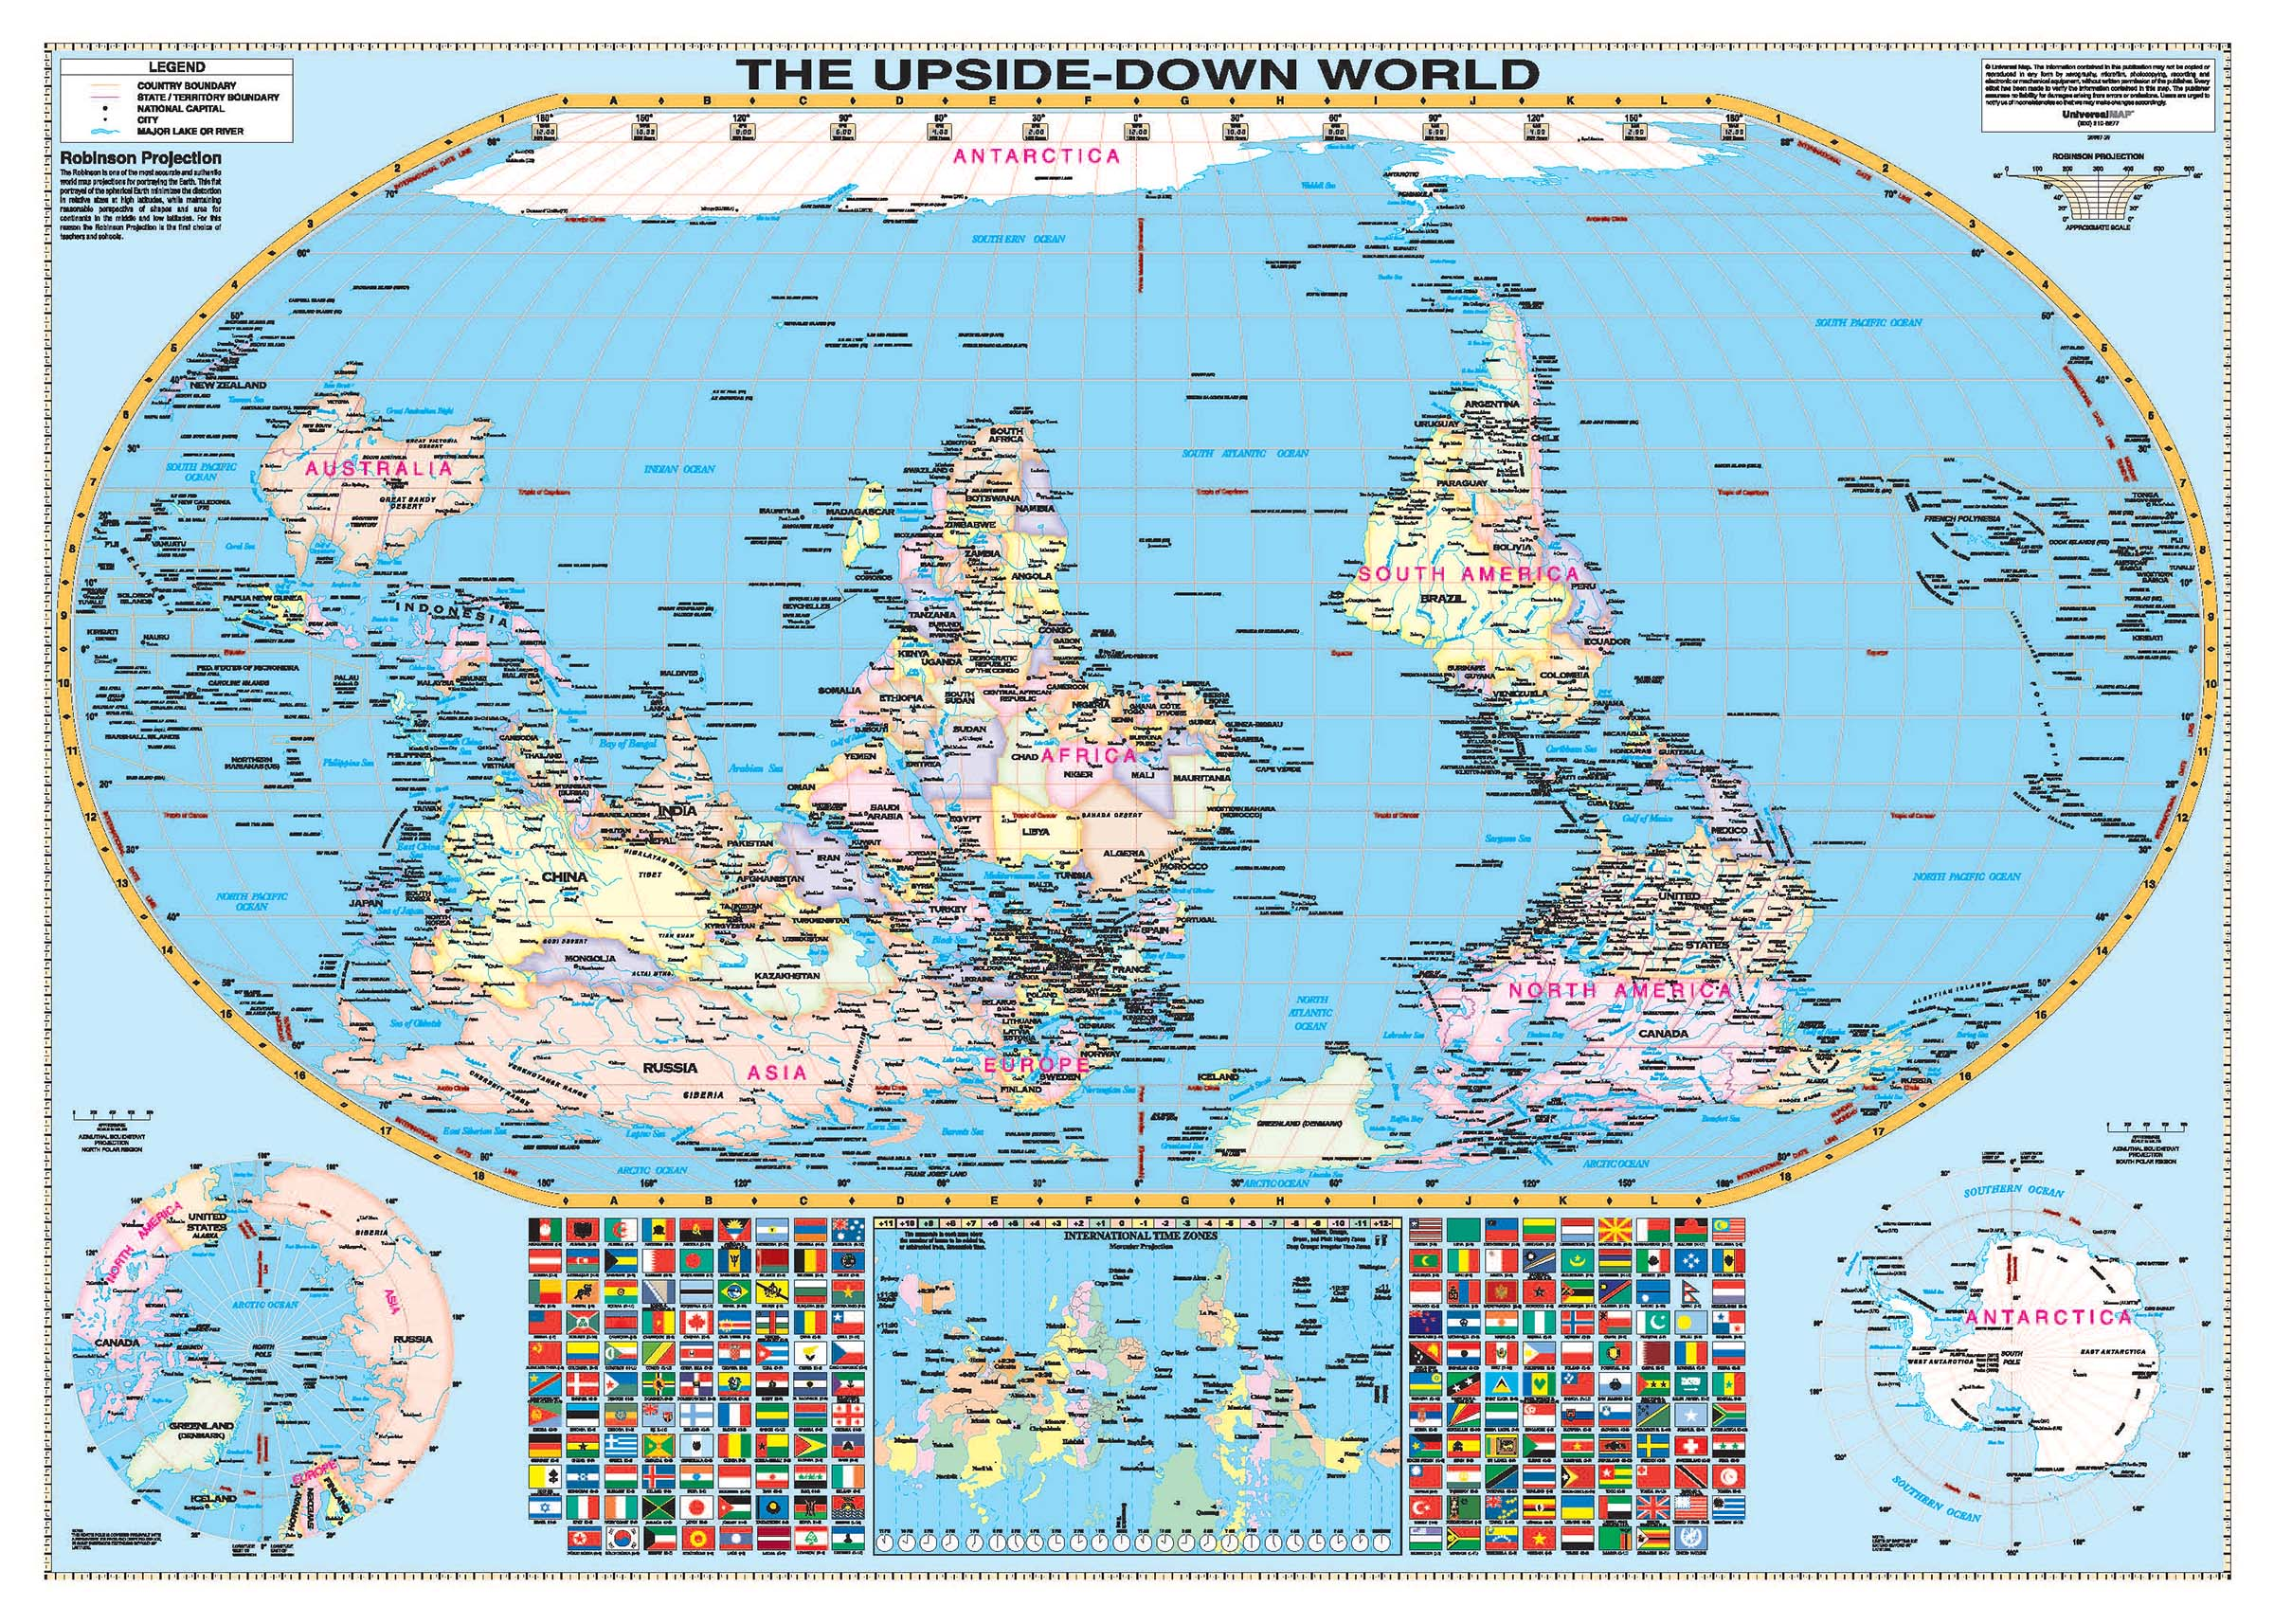 Upside Down Map Of The World Upside Down World Wall Map – KAPPA MAP GROUP